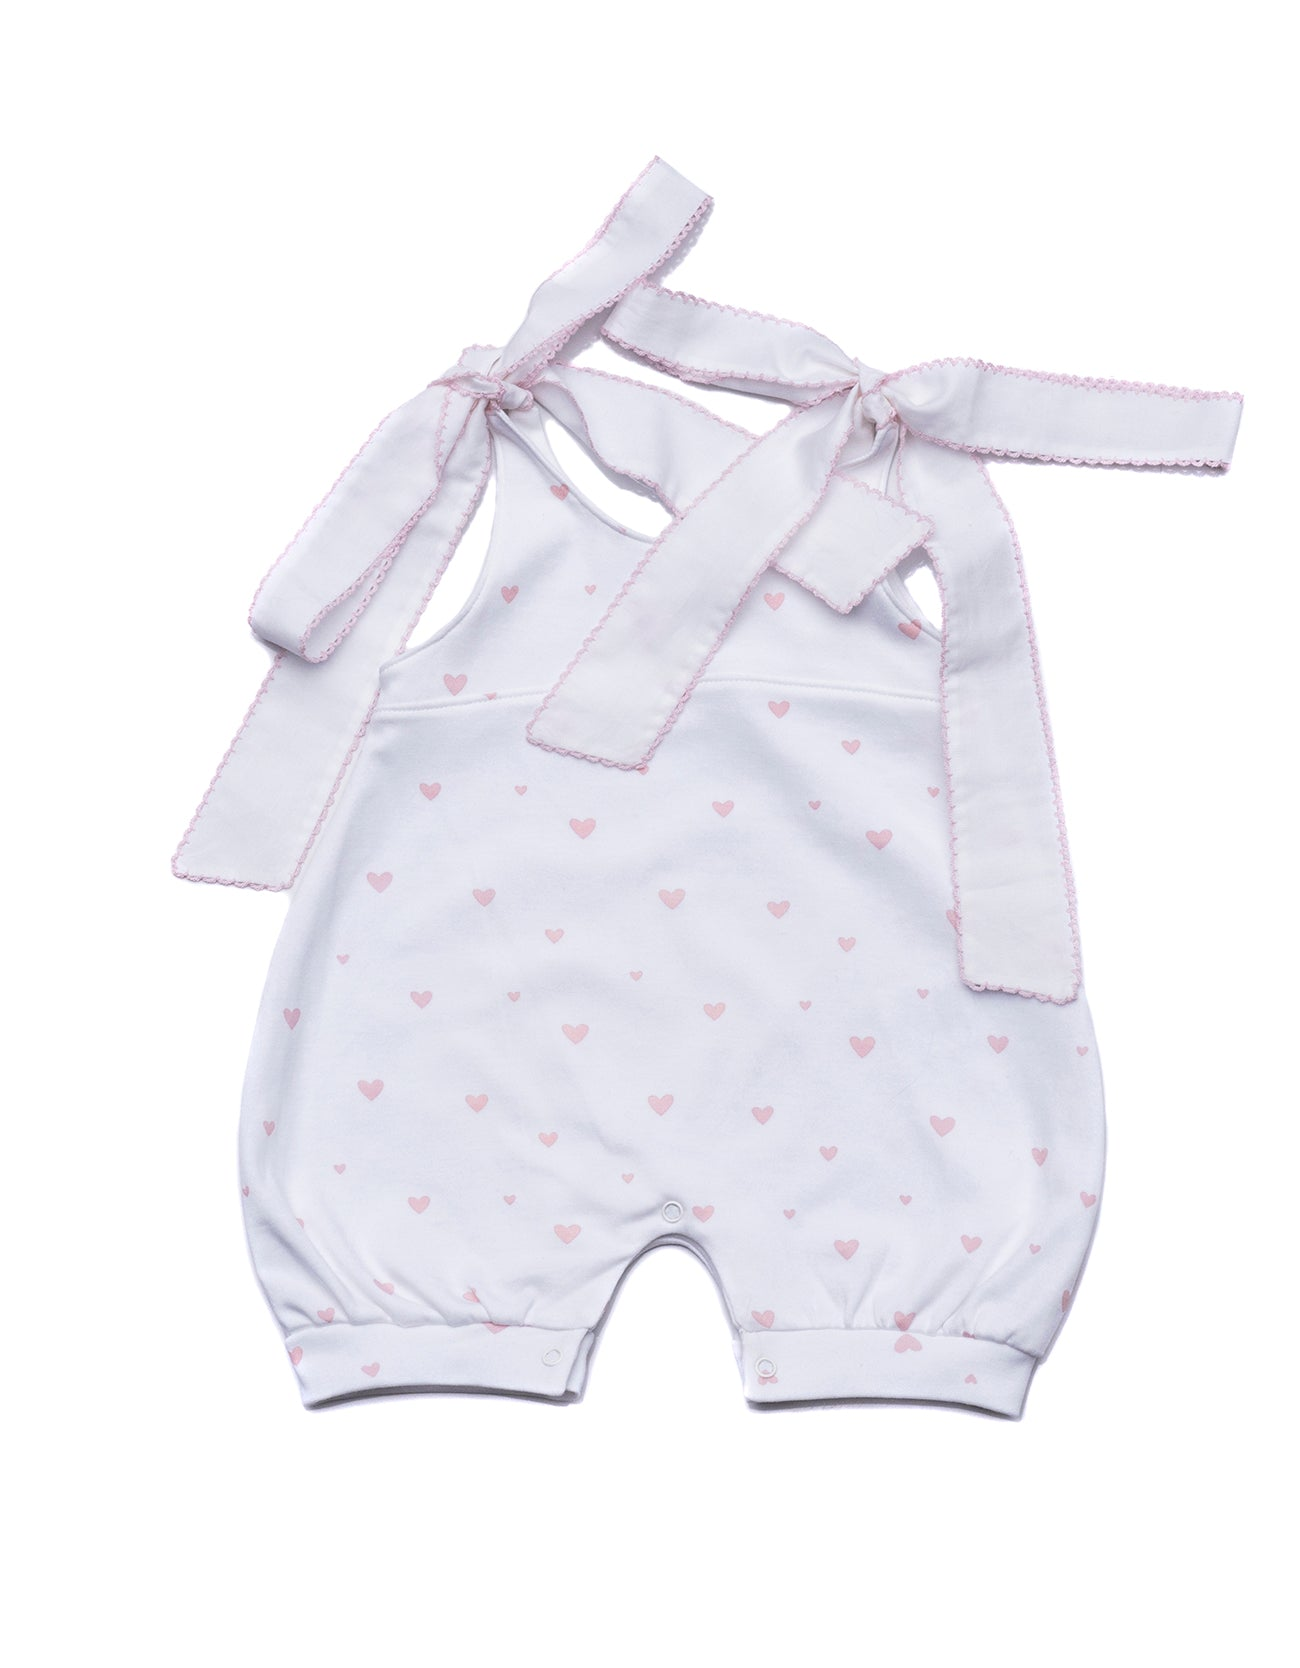 Baby Romper Pink Hearts Pima Cotton